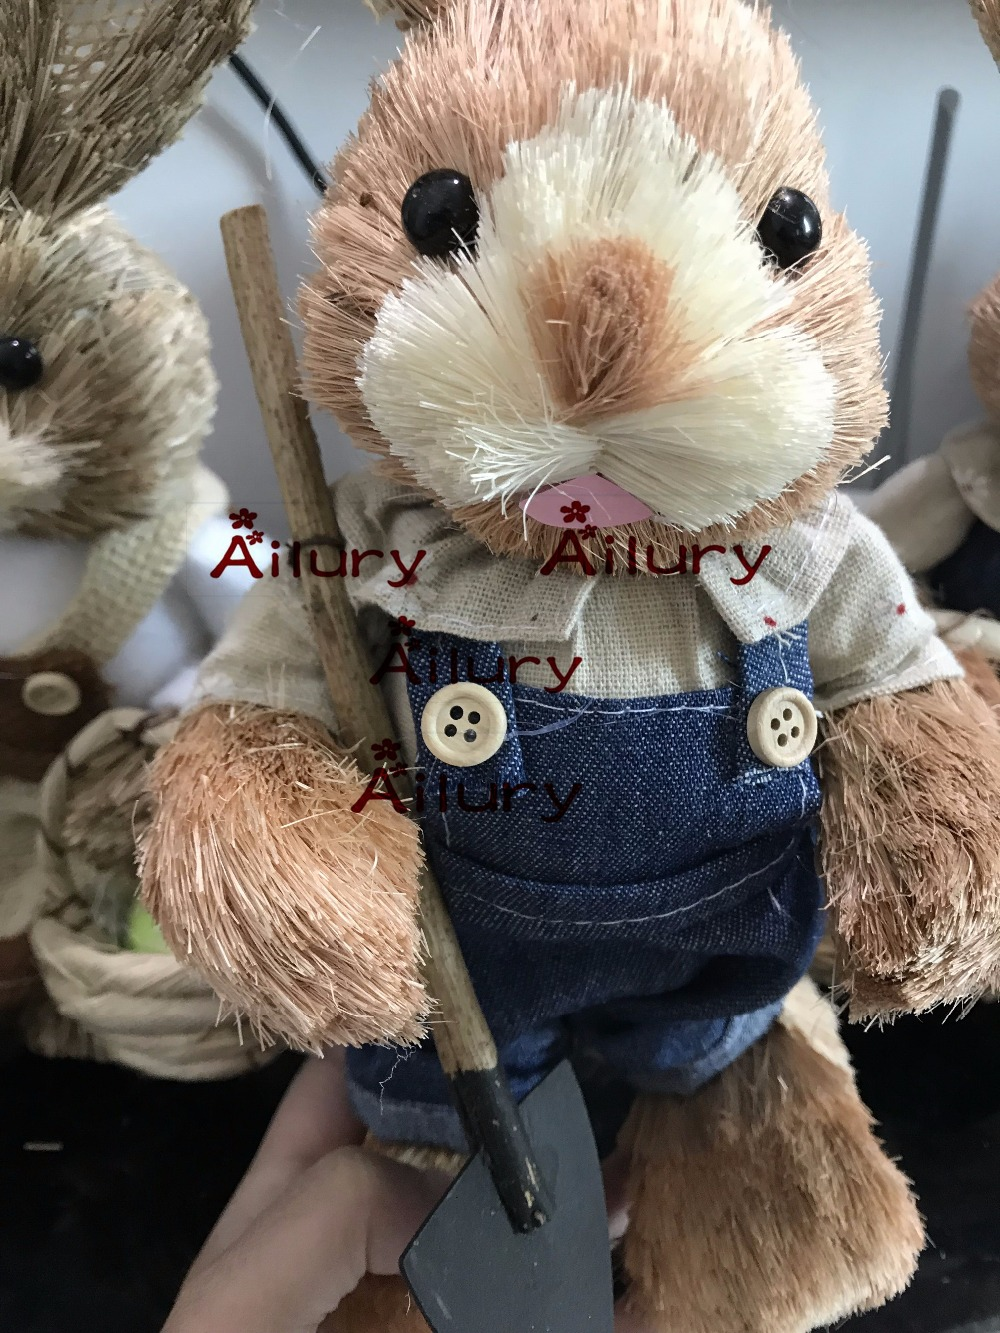 50%off,2pcs,H33cm cute Straw Jeans rabbit,table top decorations,housewarming gifts.Window oranment,Easter decoration.Xmas decor